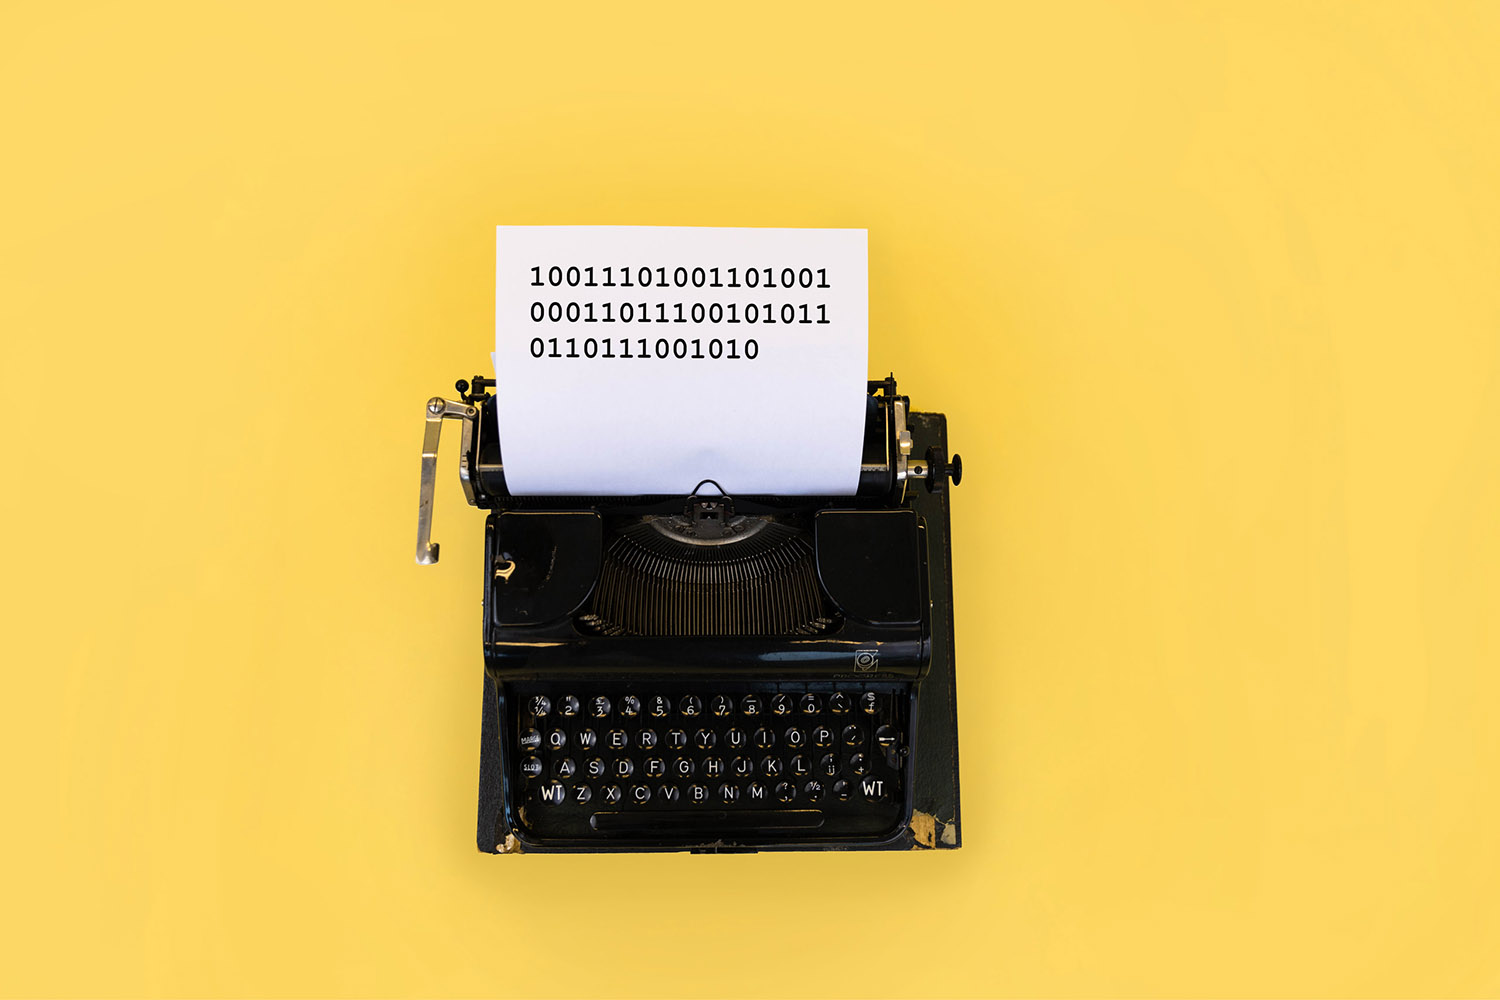 typewriter-incentro-yellow-background